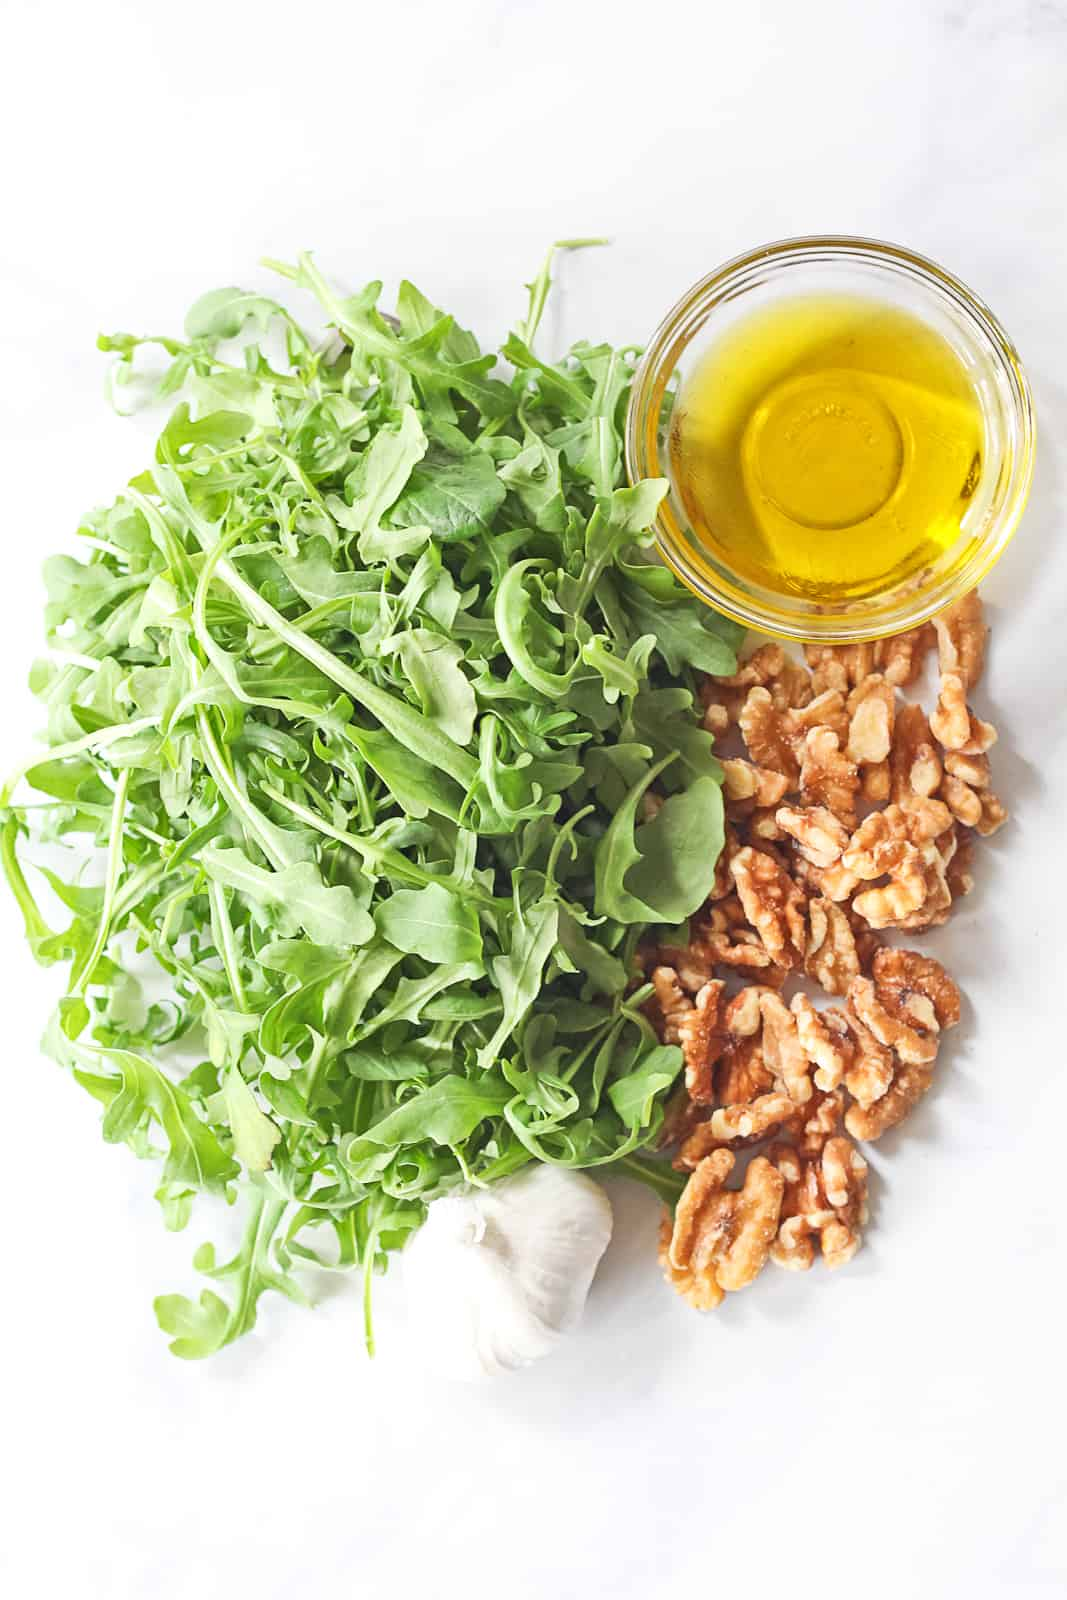 Arugula, walnuts, garlic and olive oil.